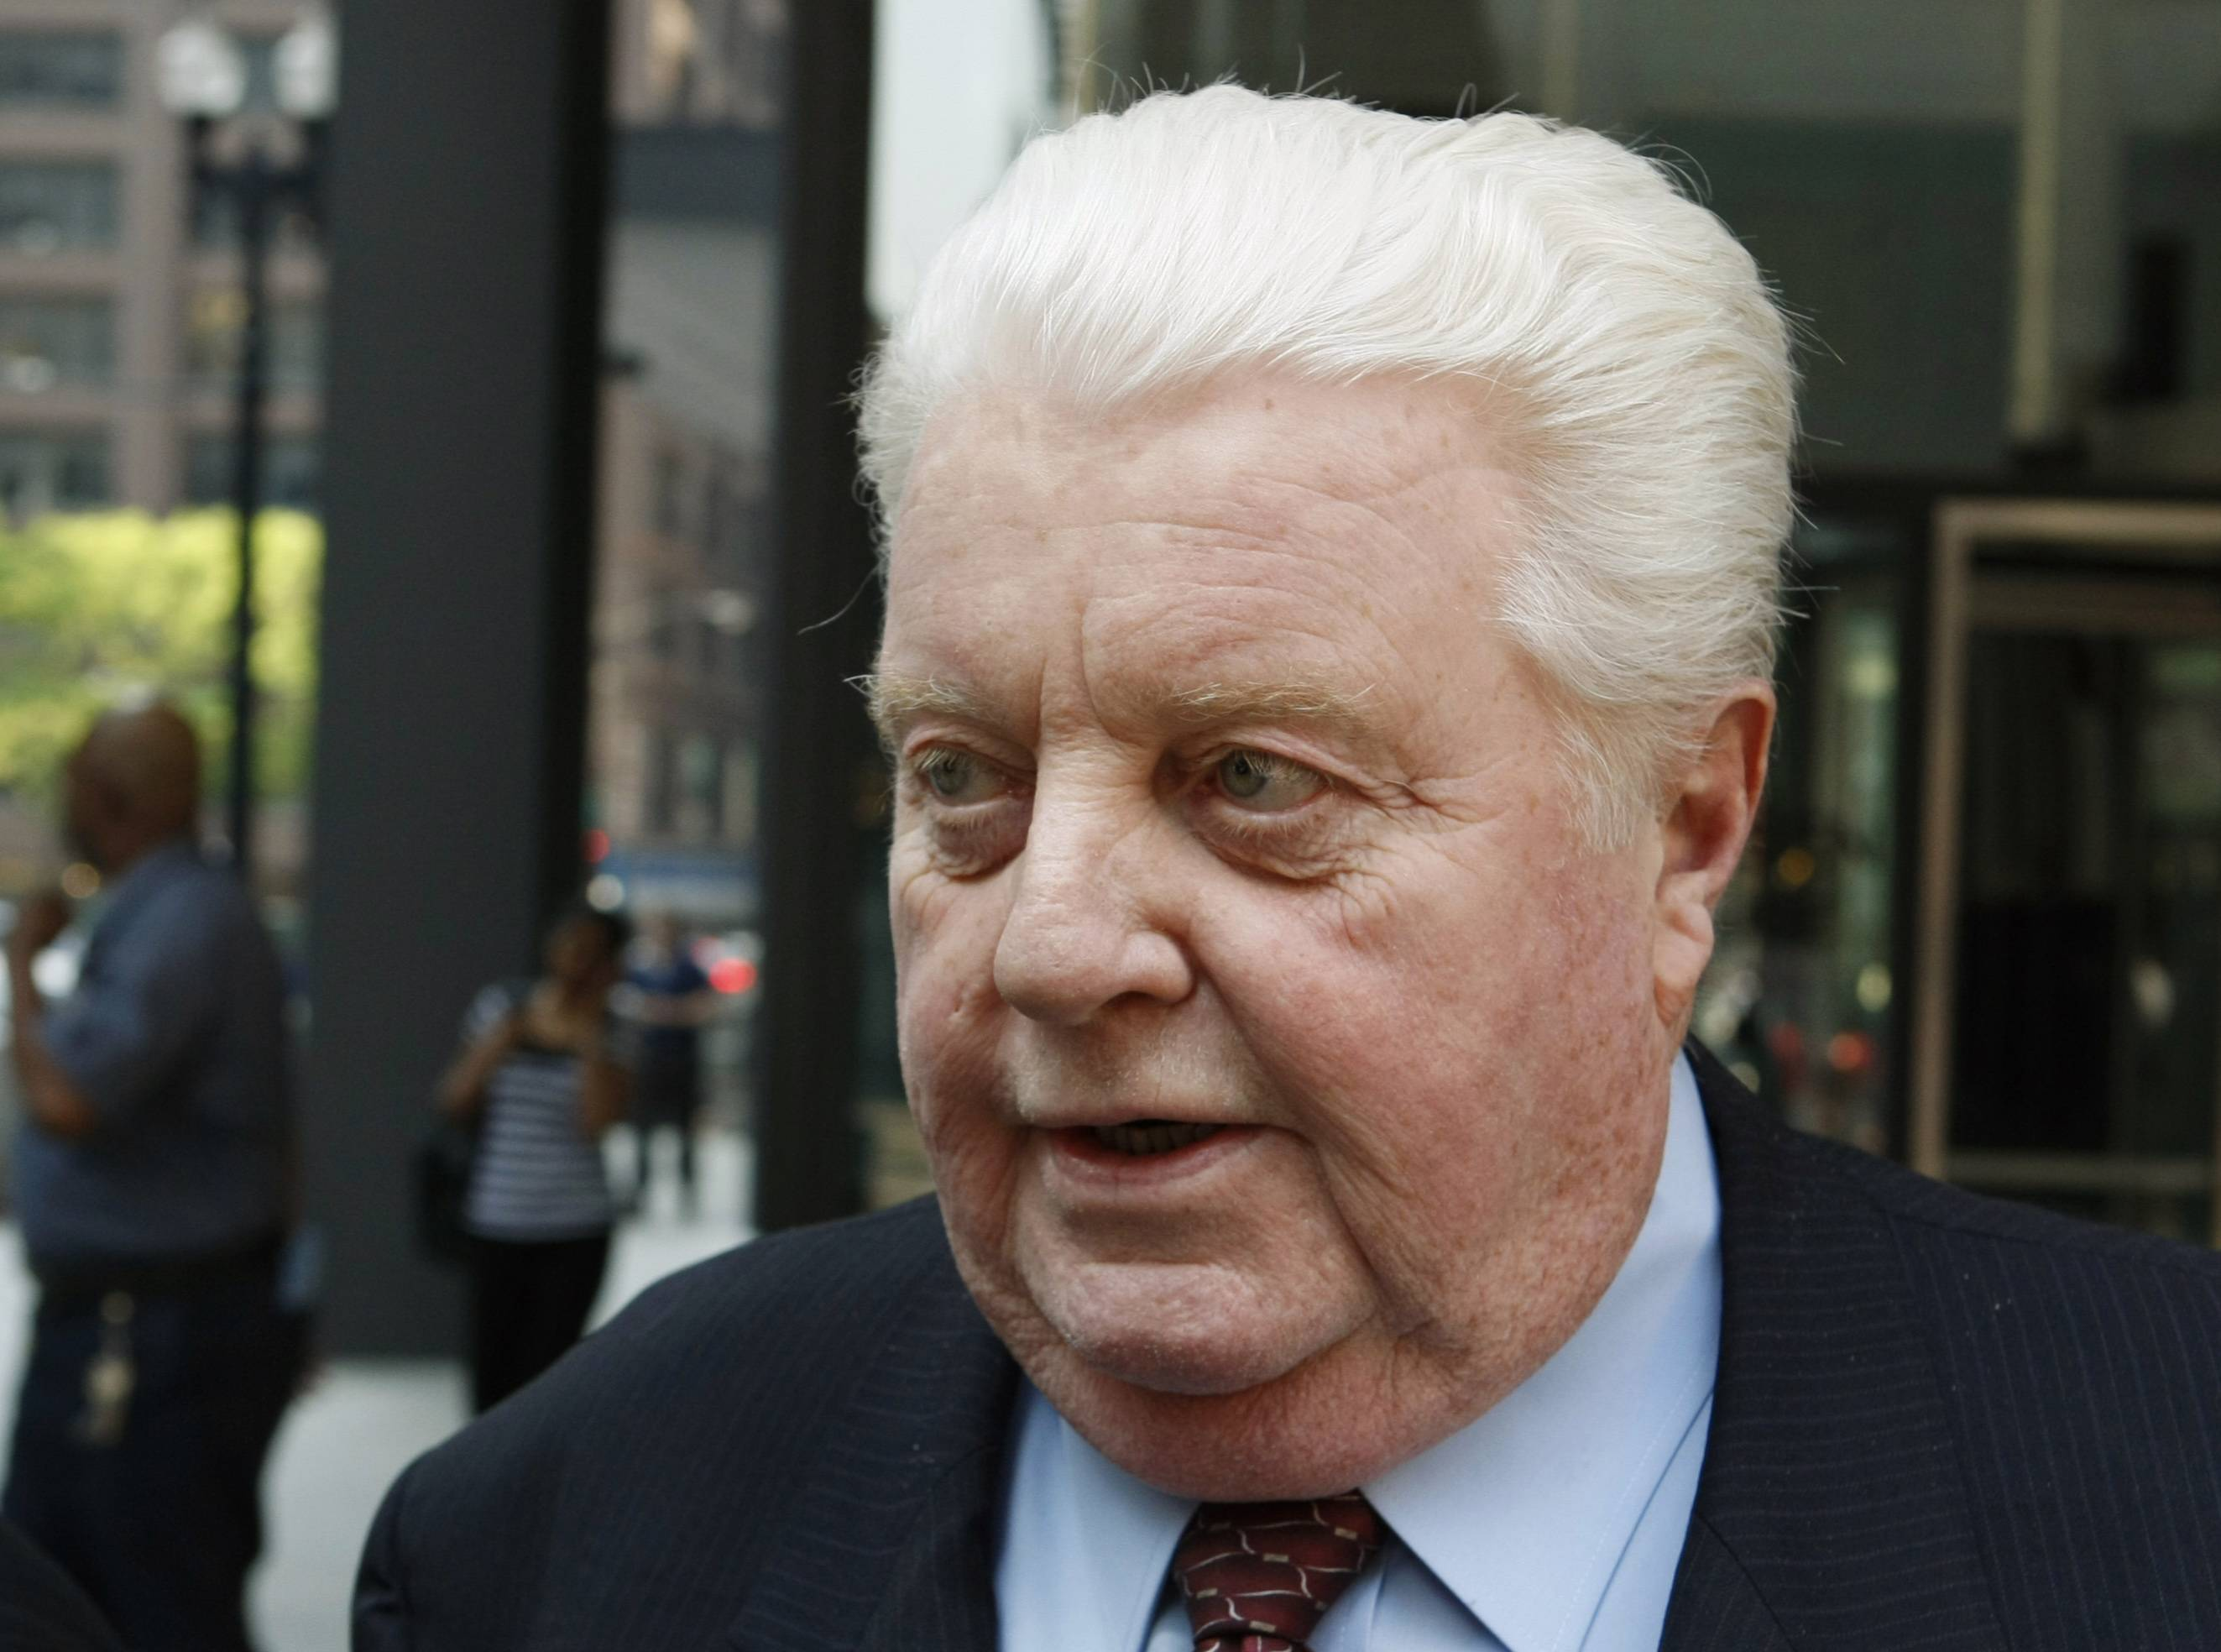 Former Chicago police Cmdr. Jon Burge was sentenced to 4½ years in prison for lying under oath in lawsuits connected to police torture.